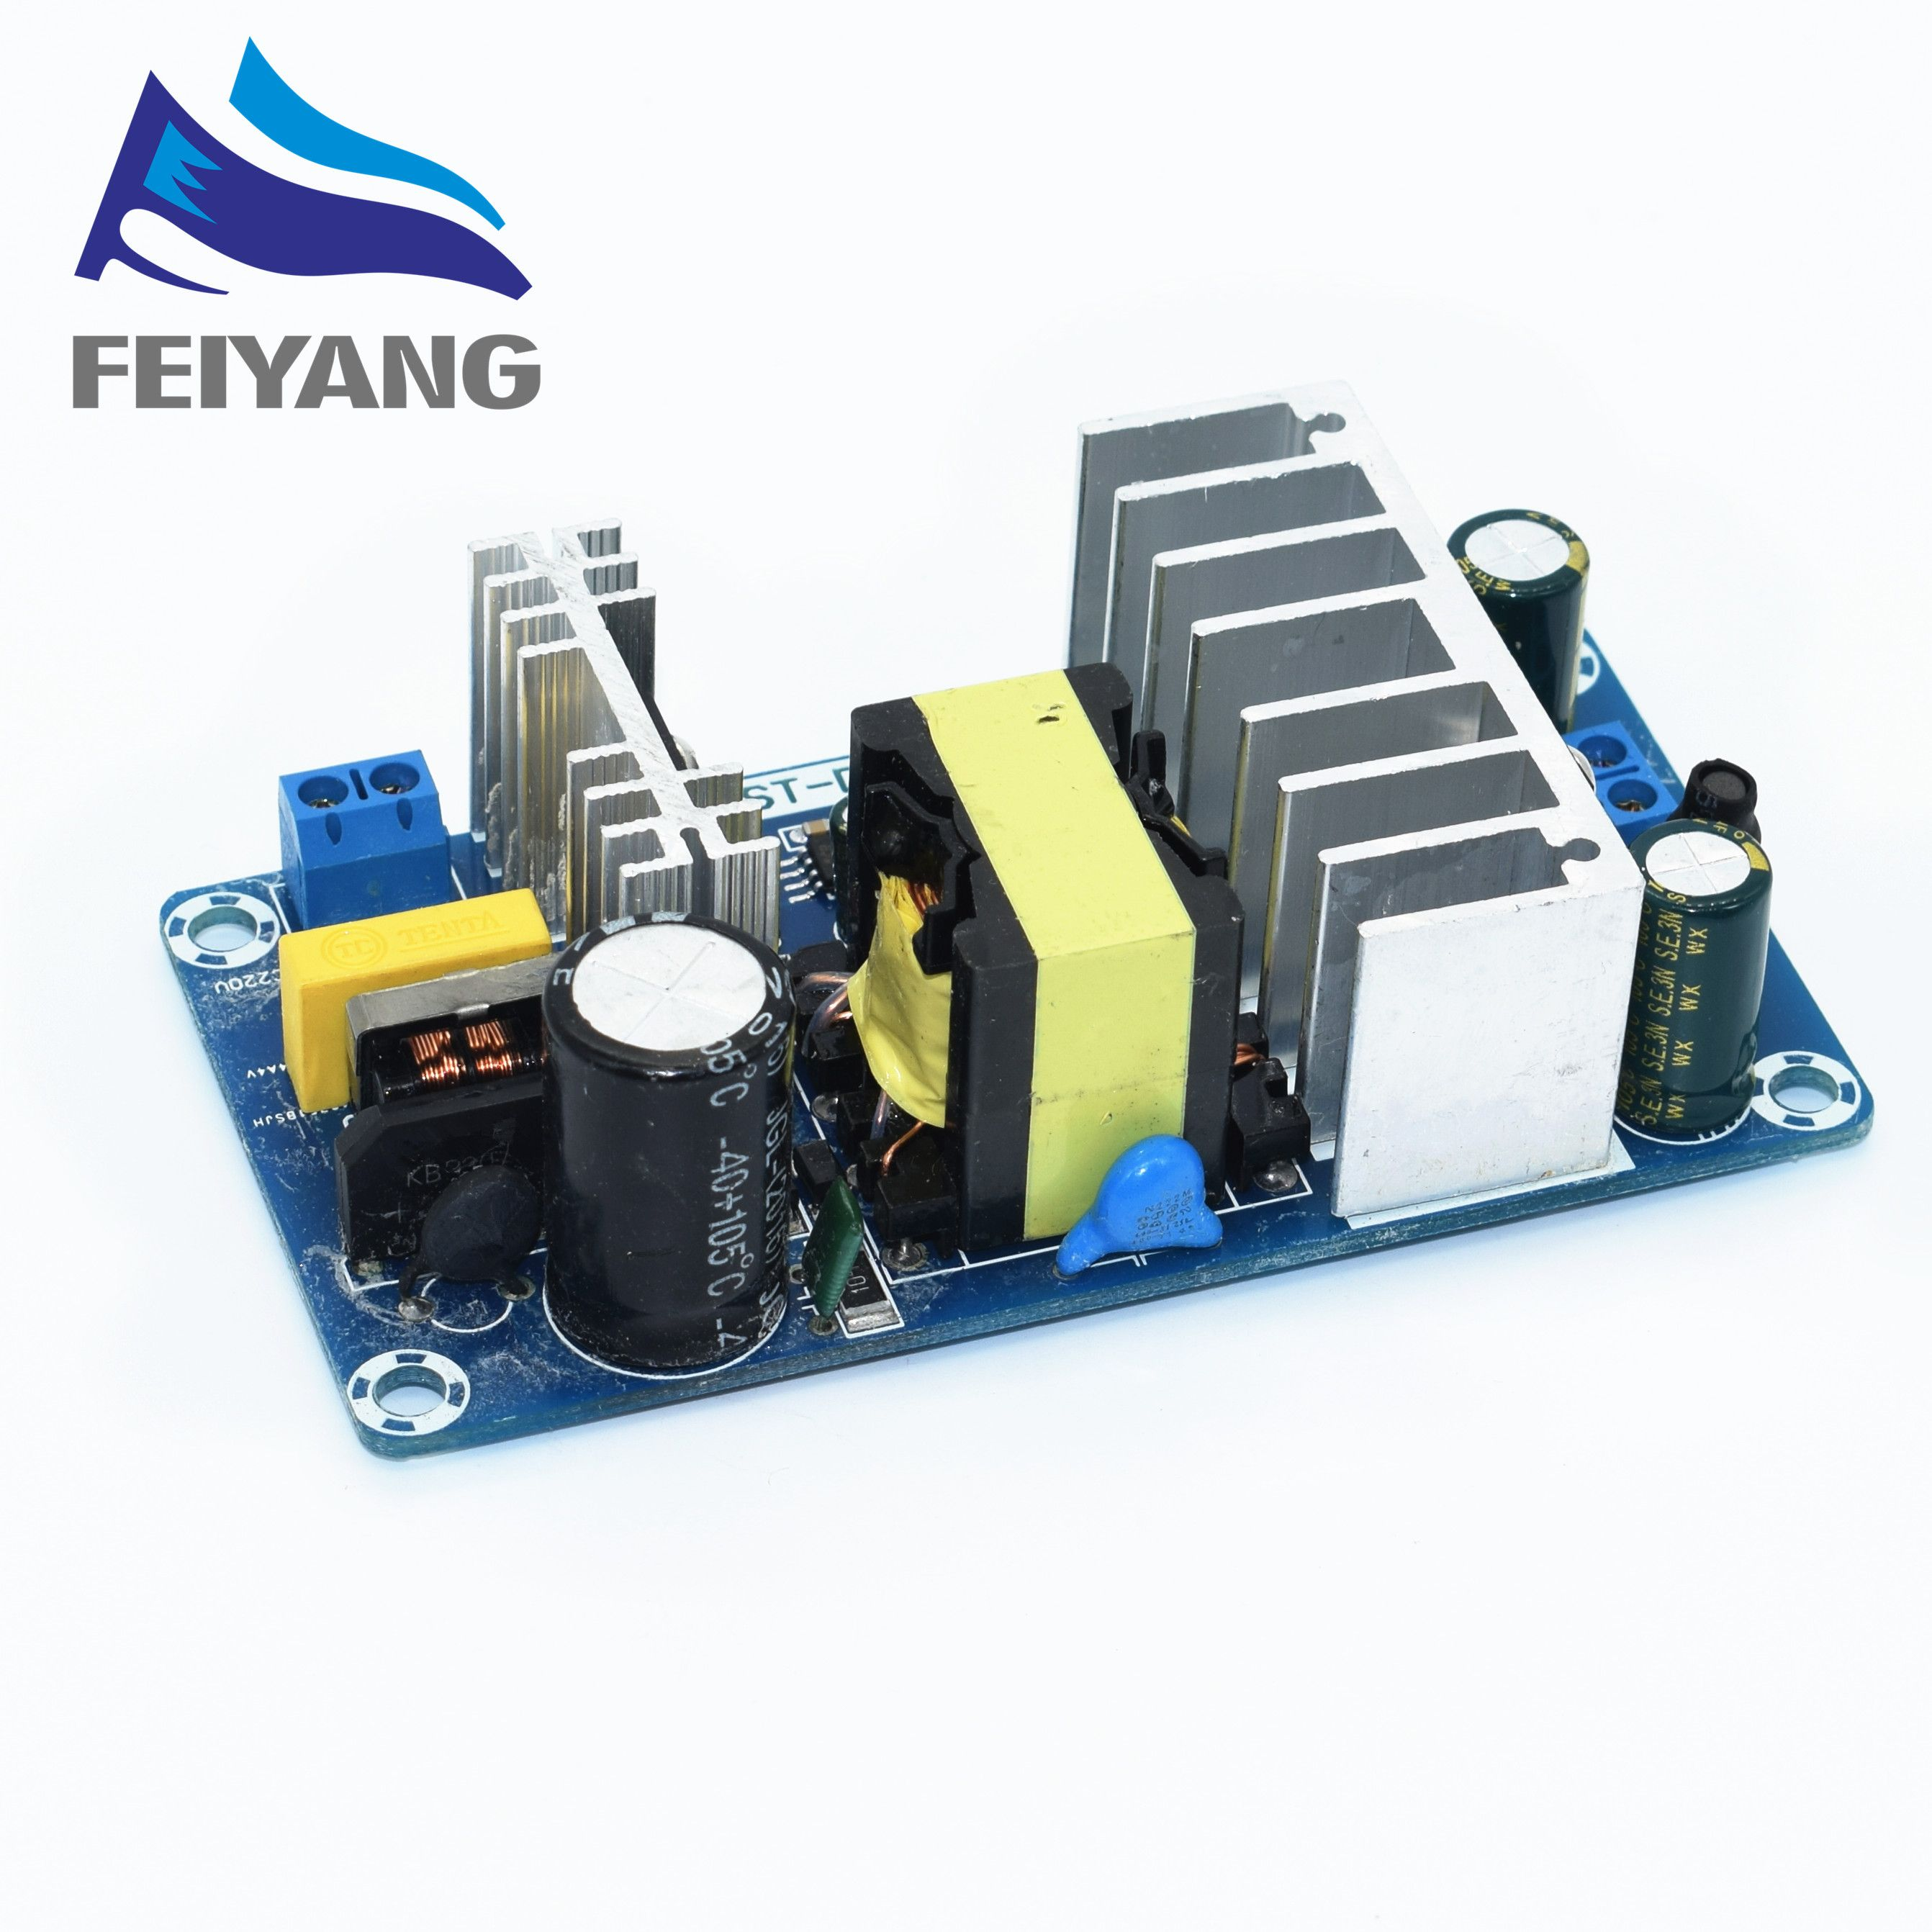 C11 AC 100-240V to DC 24V 4A 6A switching power supply module AC-DC